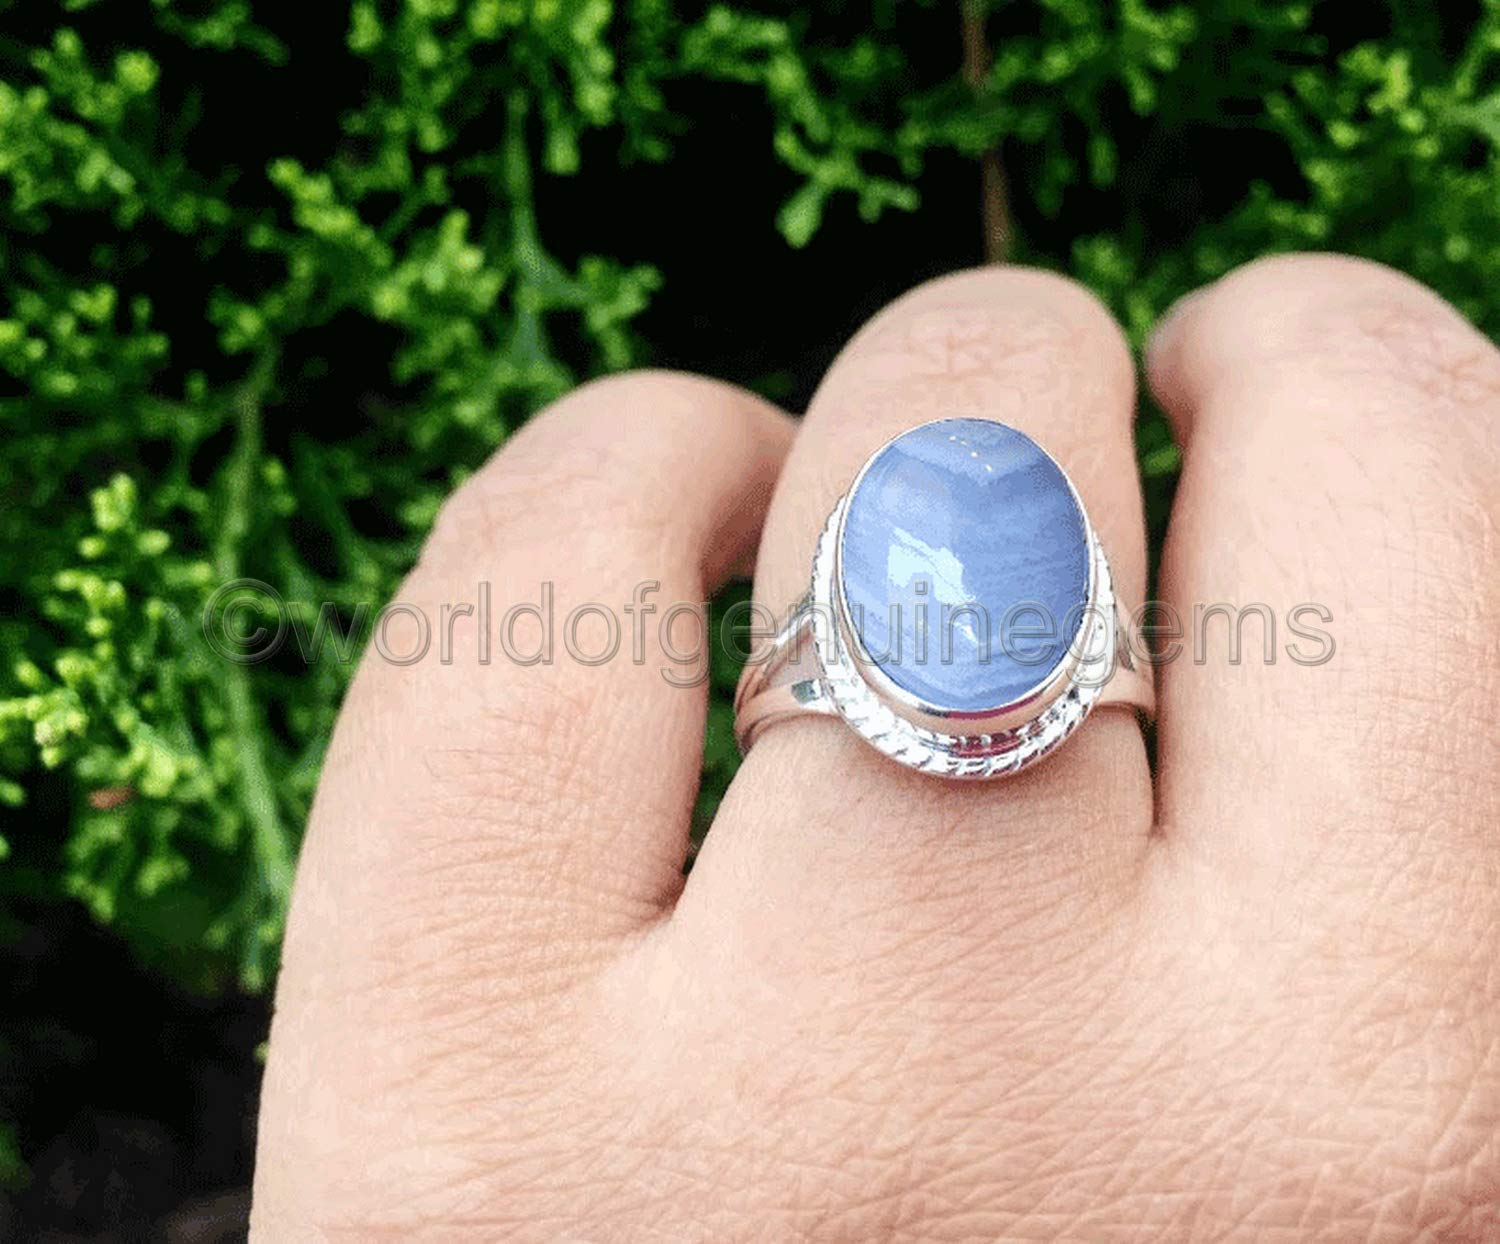 Simple Split Shank Fashion Sterling Silver Blue Lace Cabochon Elongated Oval Agate Ring